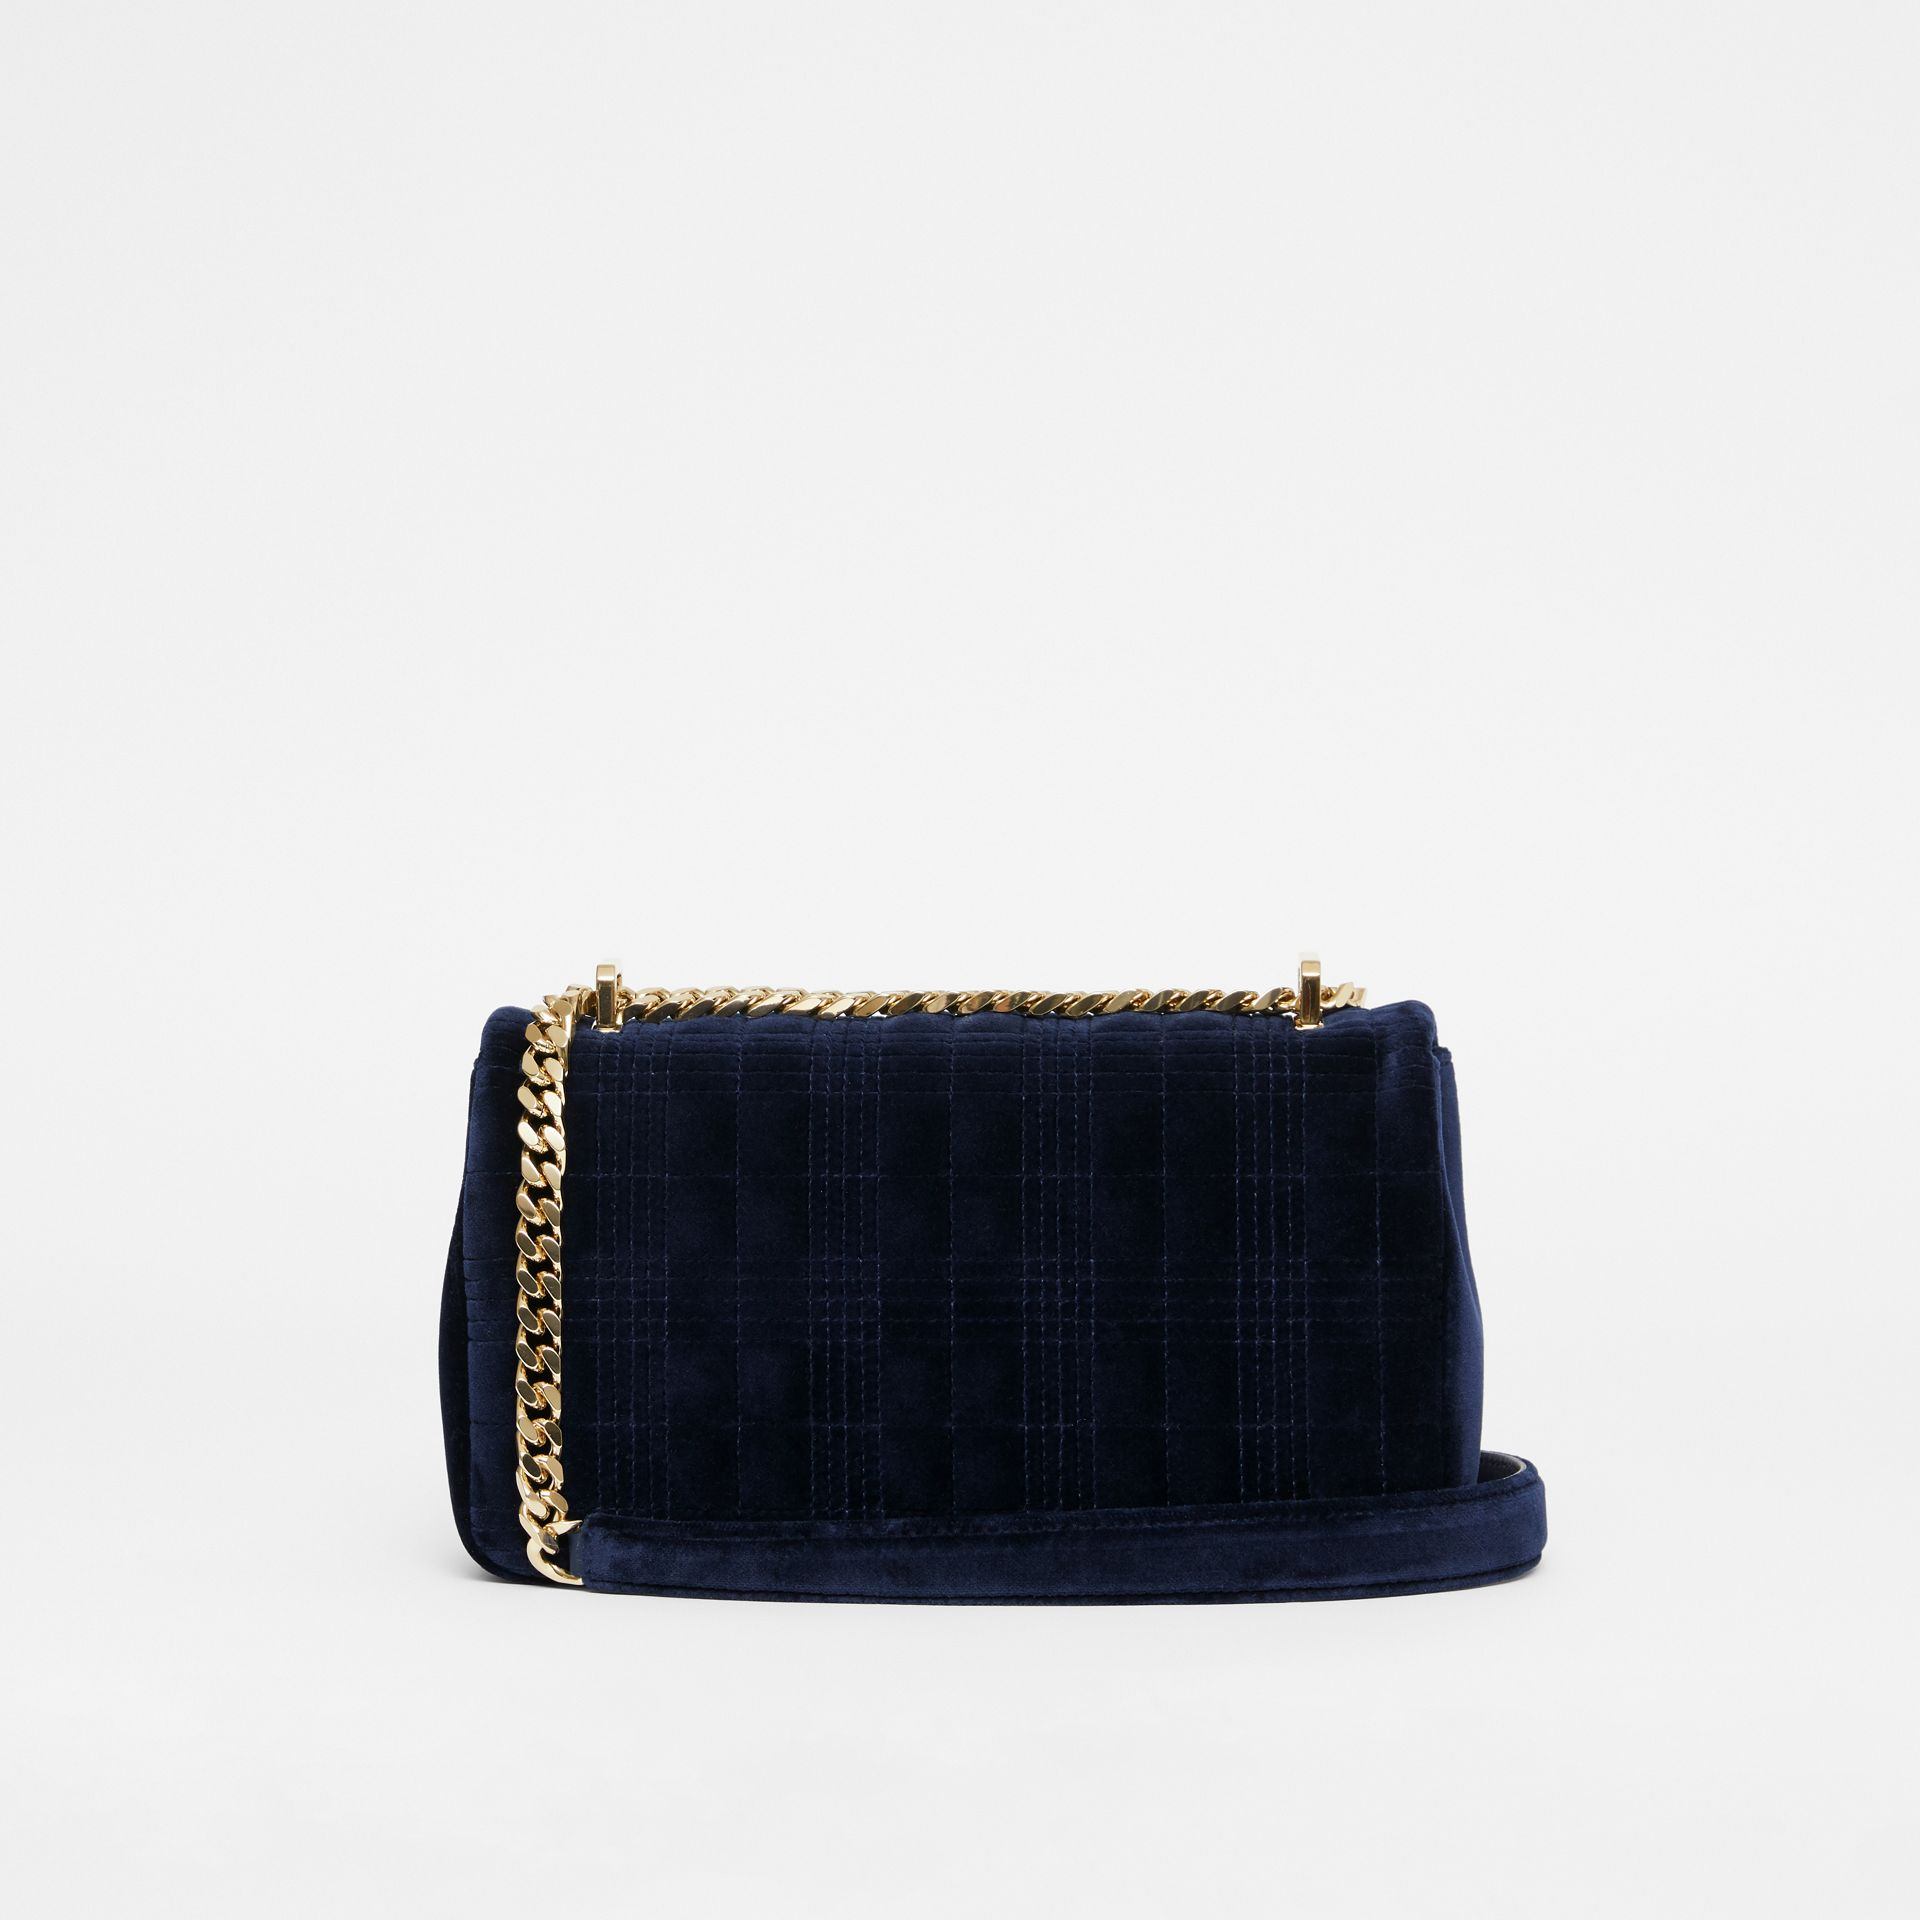 Small Quilted Velvet Lola Bag in Navy - Women | Burberry Australia - gallery image 7